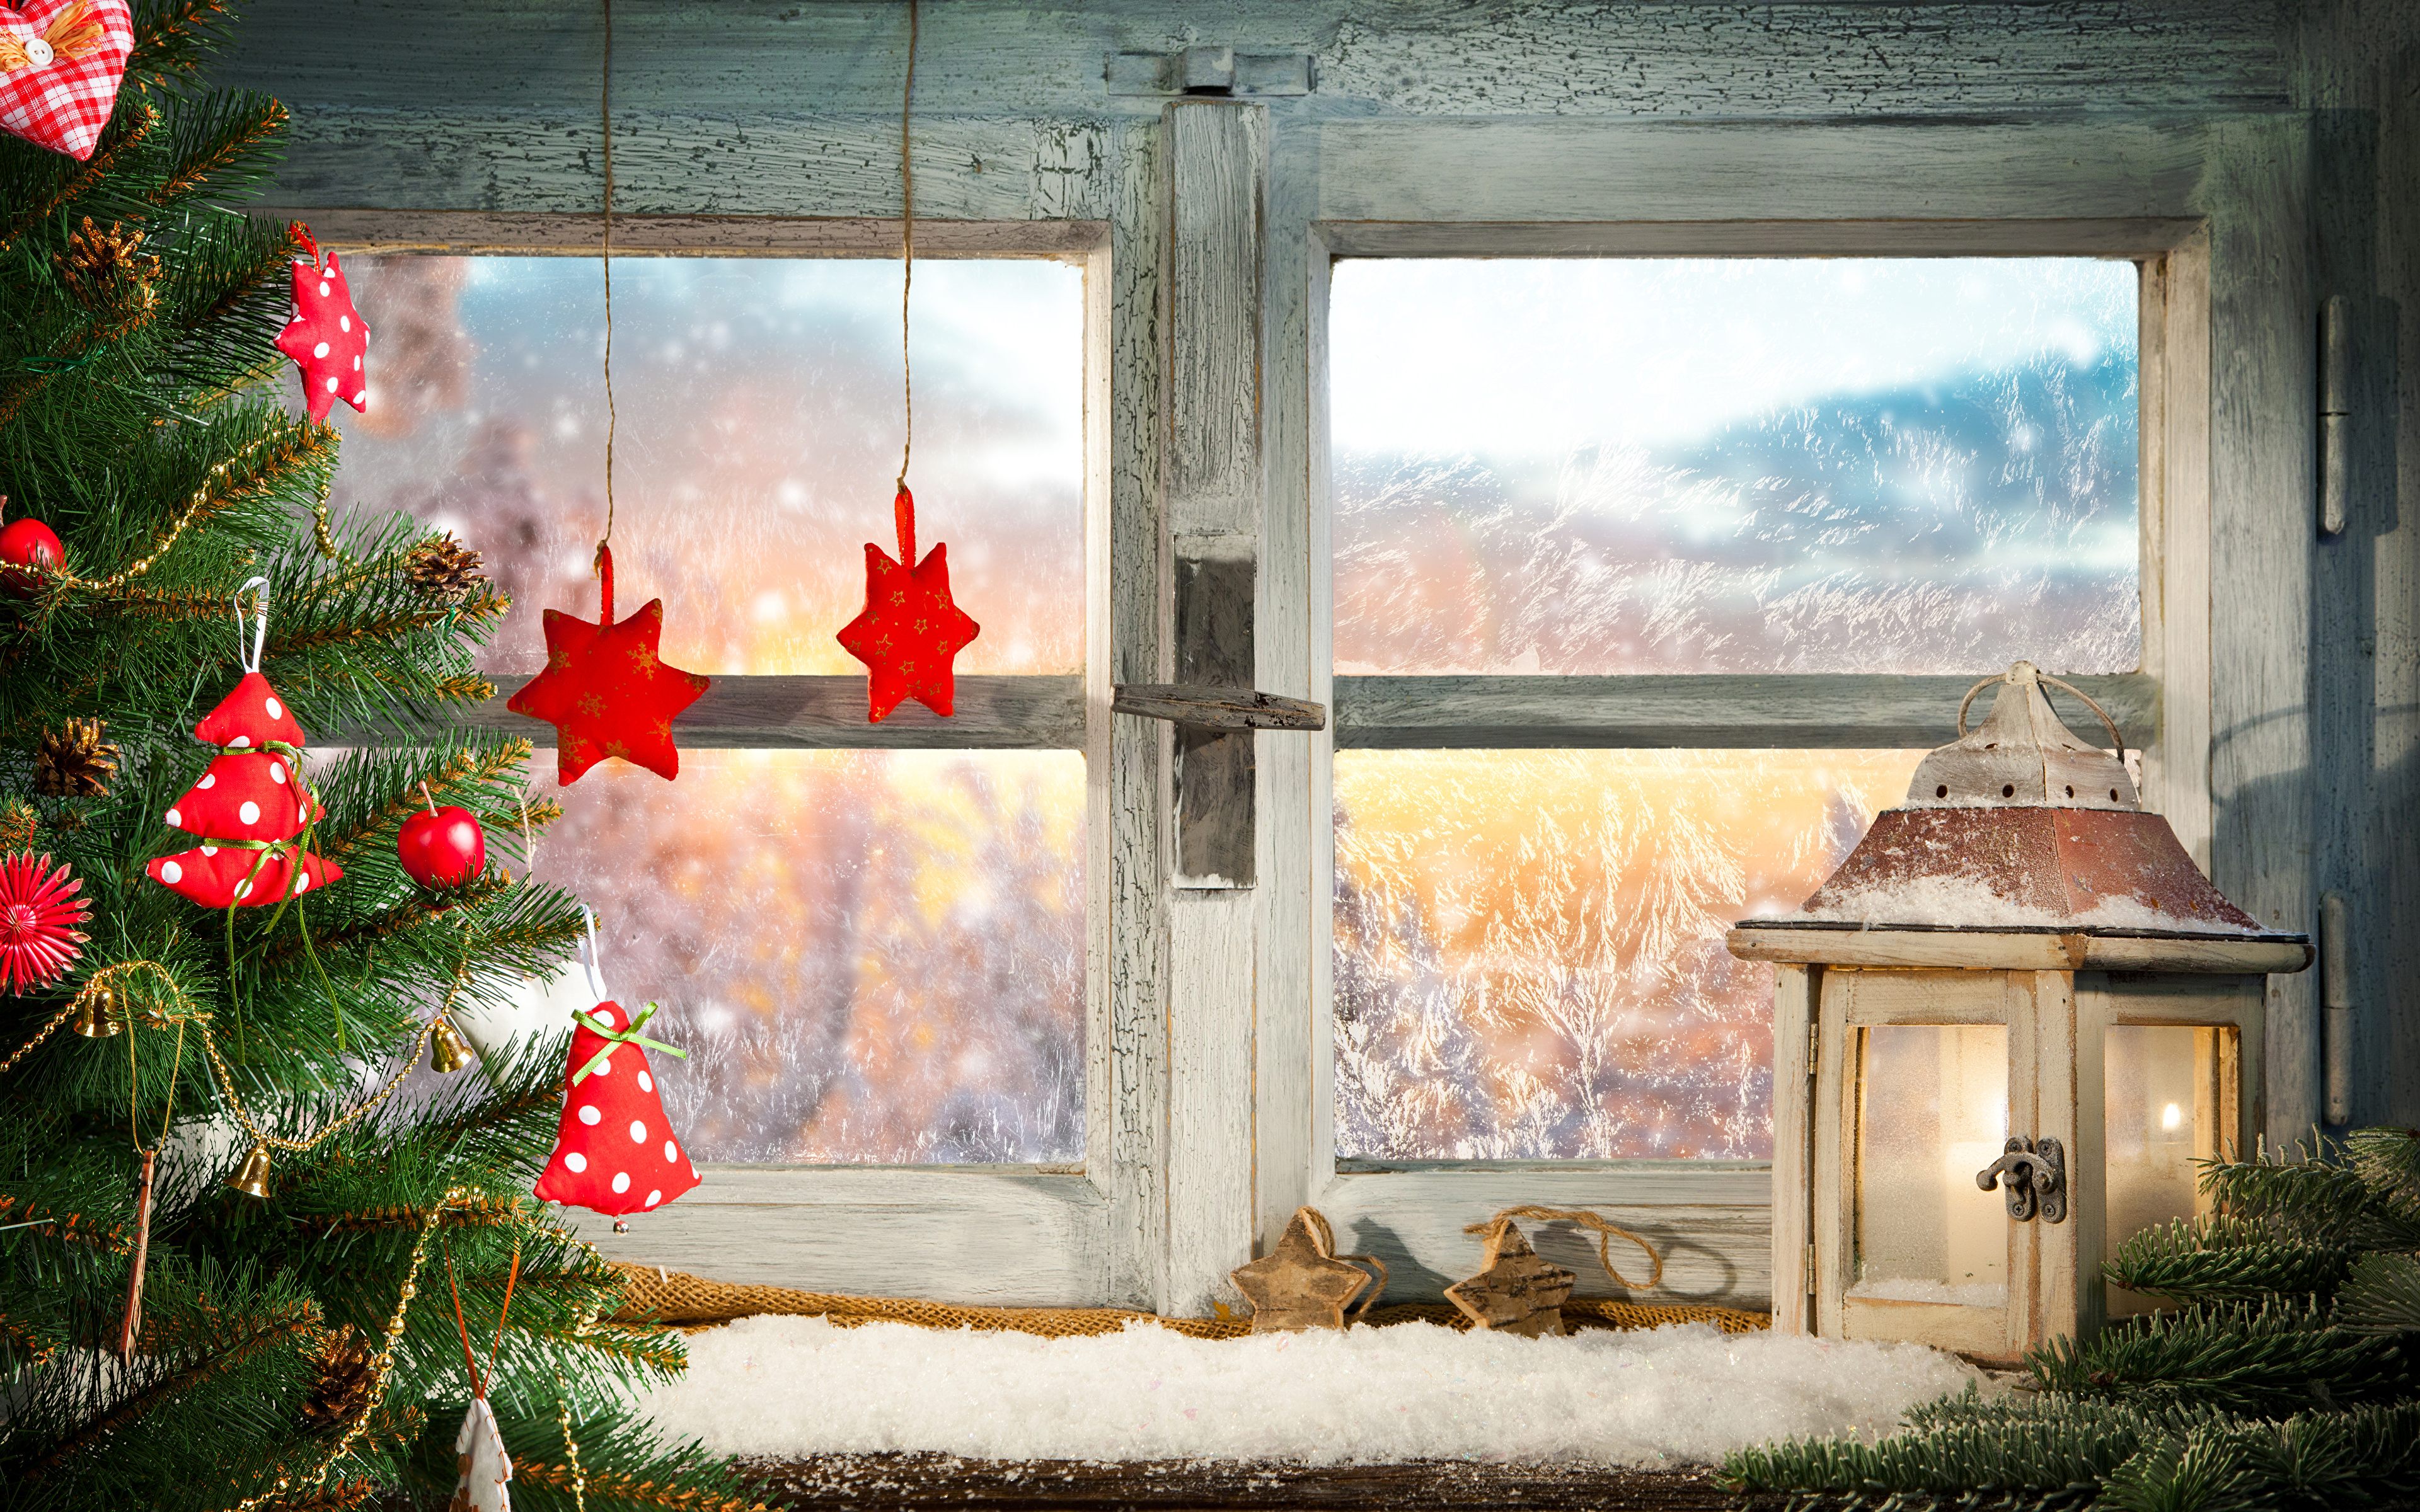 Christmas Window Candles.Photos Christmas Window Candles Branches Conifer Cone 3840x2400